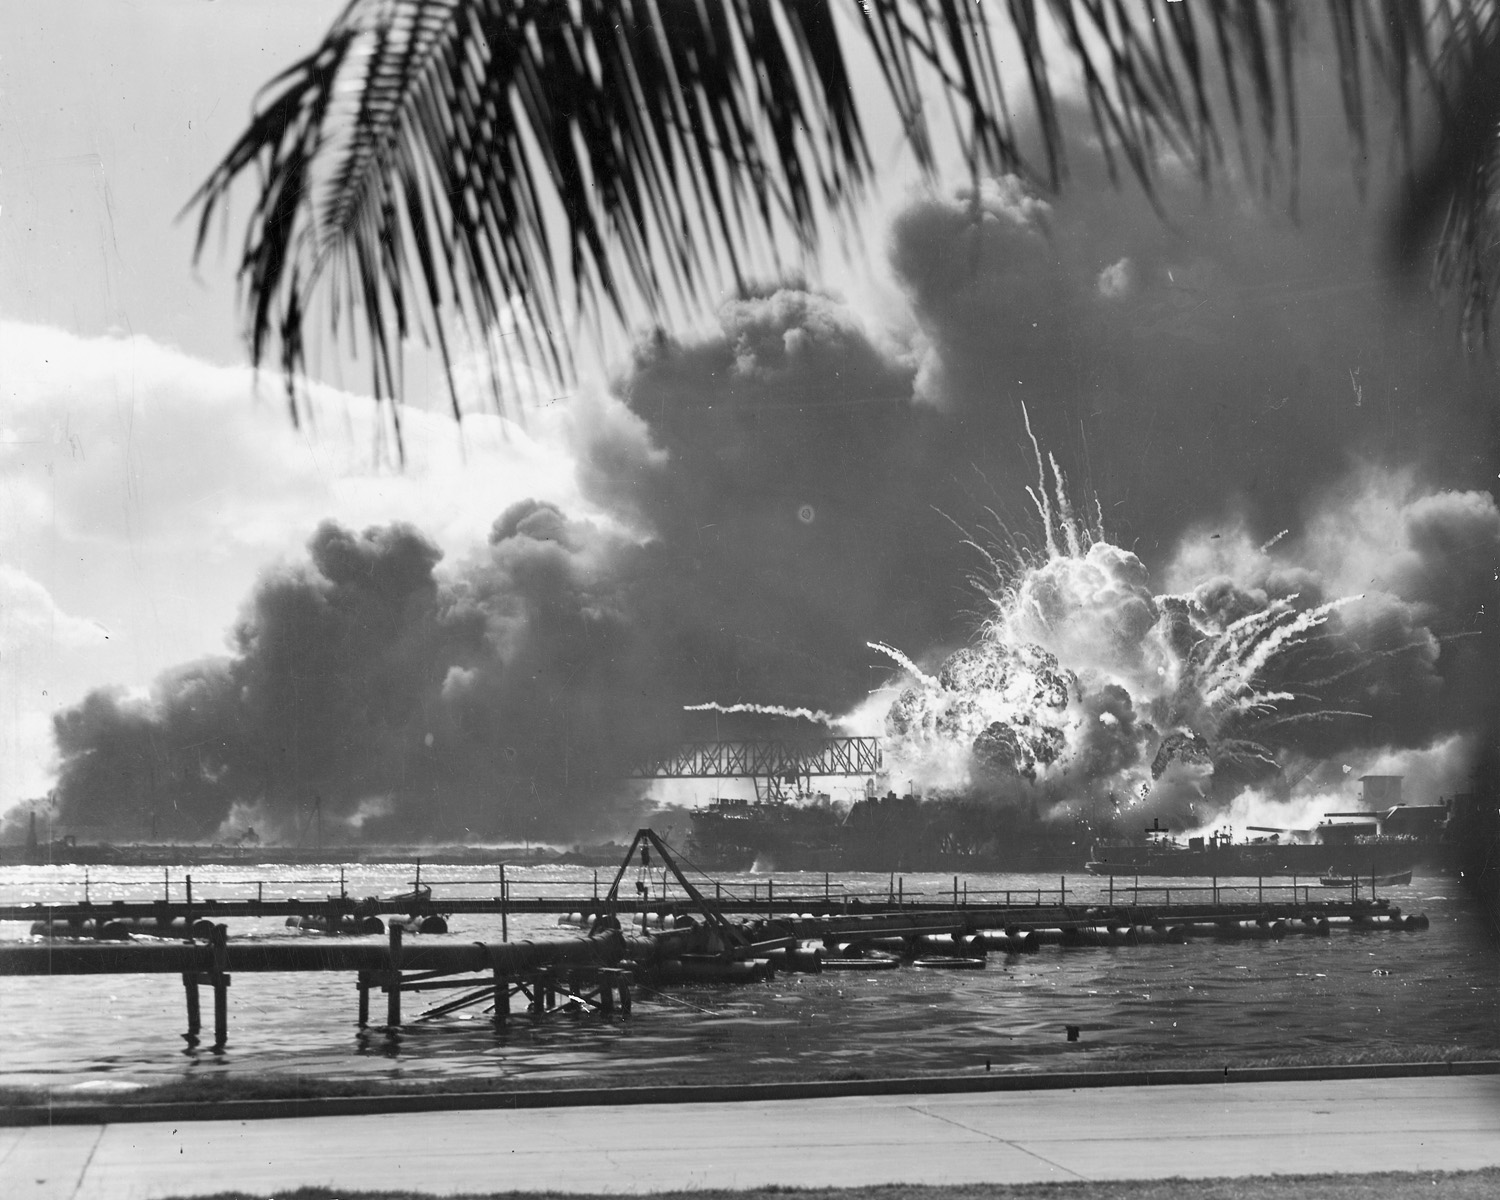 http://www.archives.gov/publications/prologue/2004/winter/images/pearl-harbor.jpg